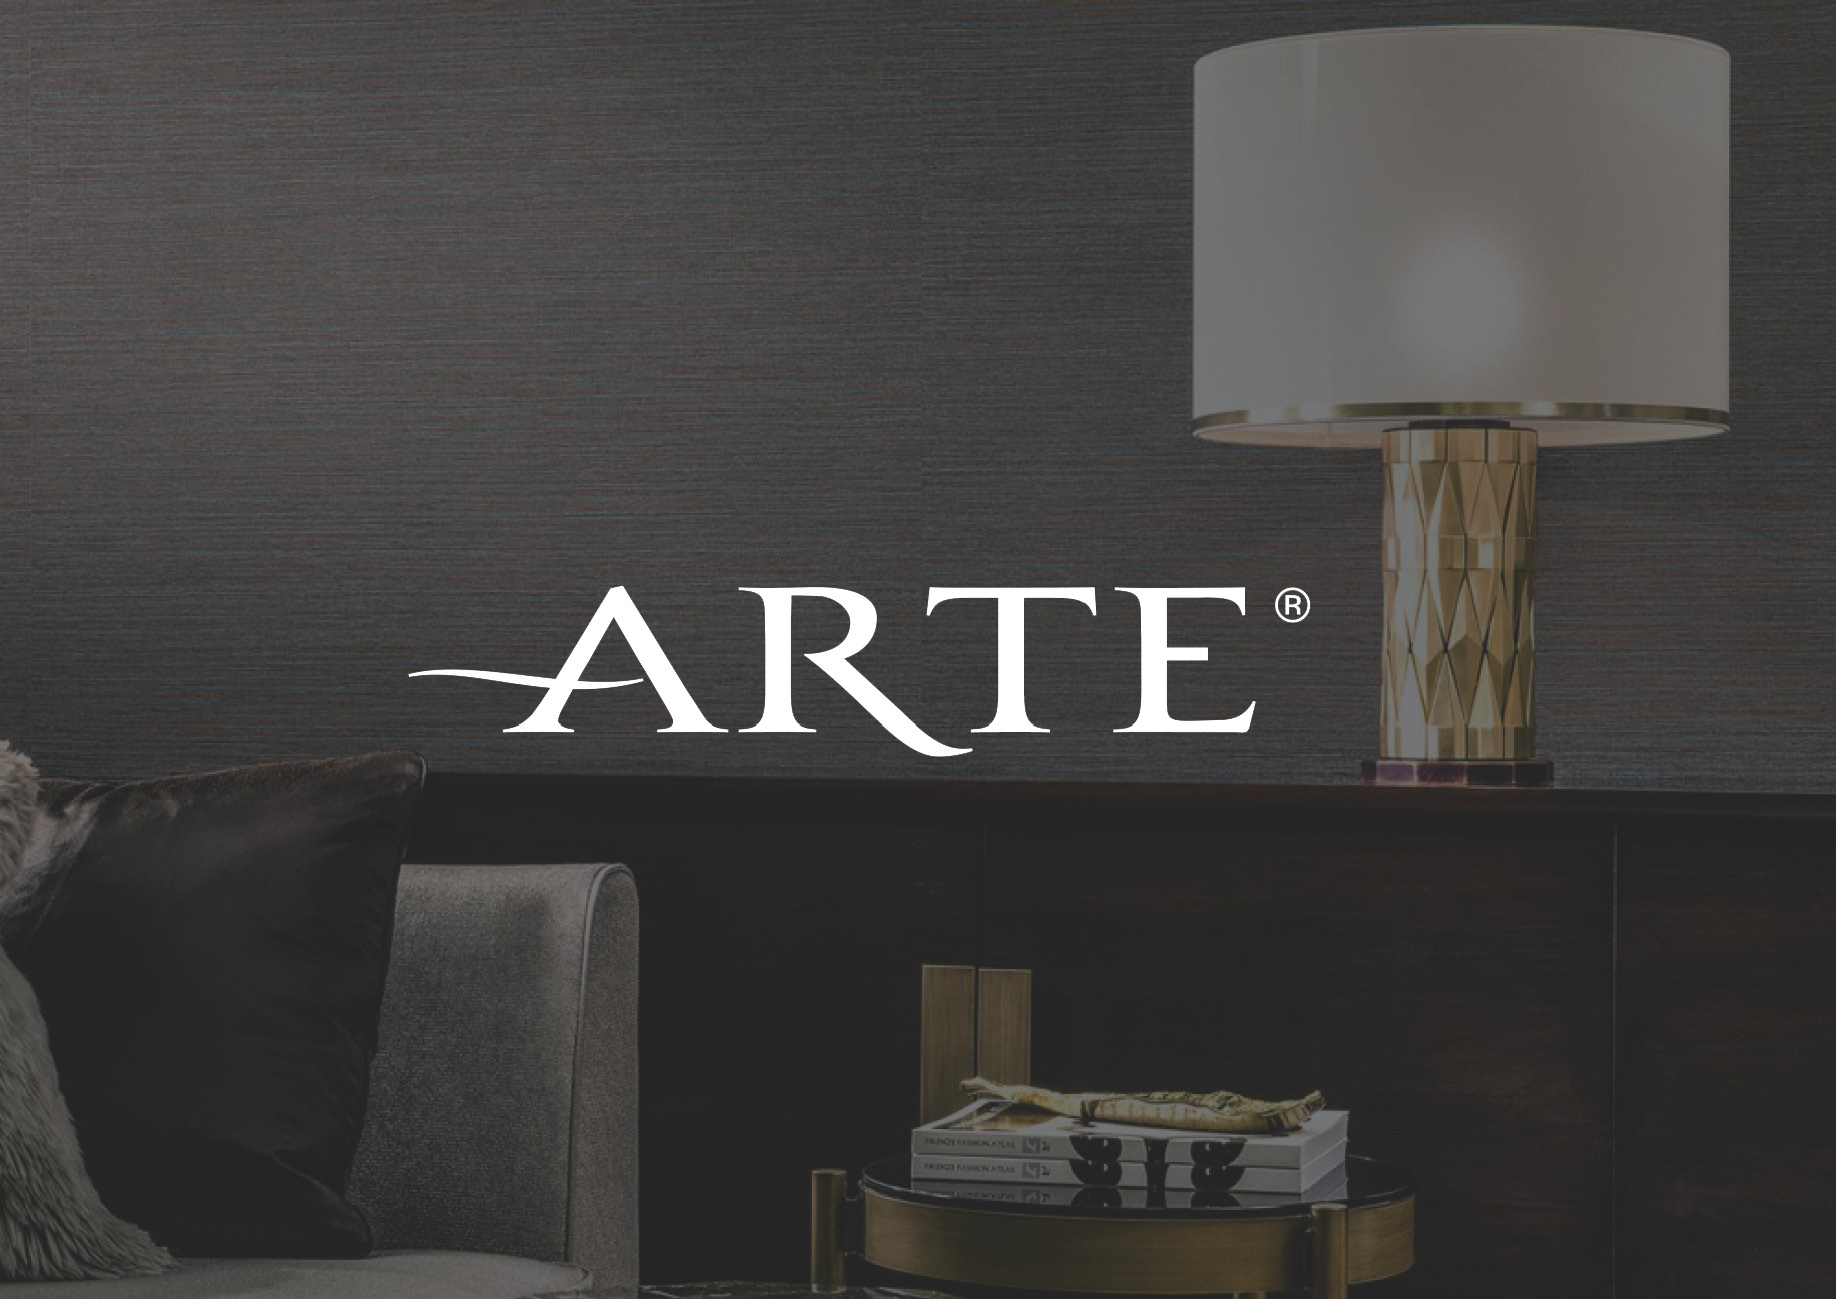 - Arte is a passionate designer & manufacturer of sophisticated wallcoverings. The company, owned by the family Desart, has been in play since 1981. Arte wallcoverings adorn the walls of both residential homes and project interiors in over 80 countries worldwide.